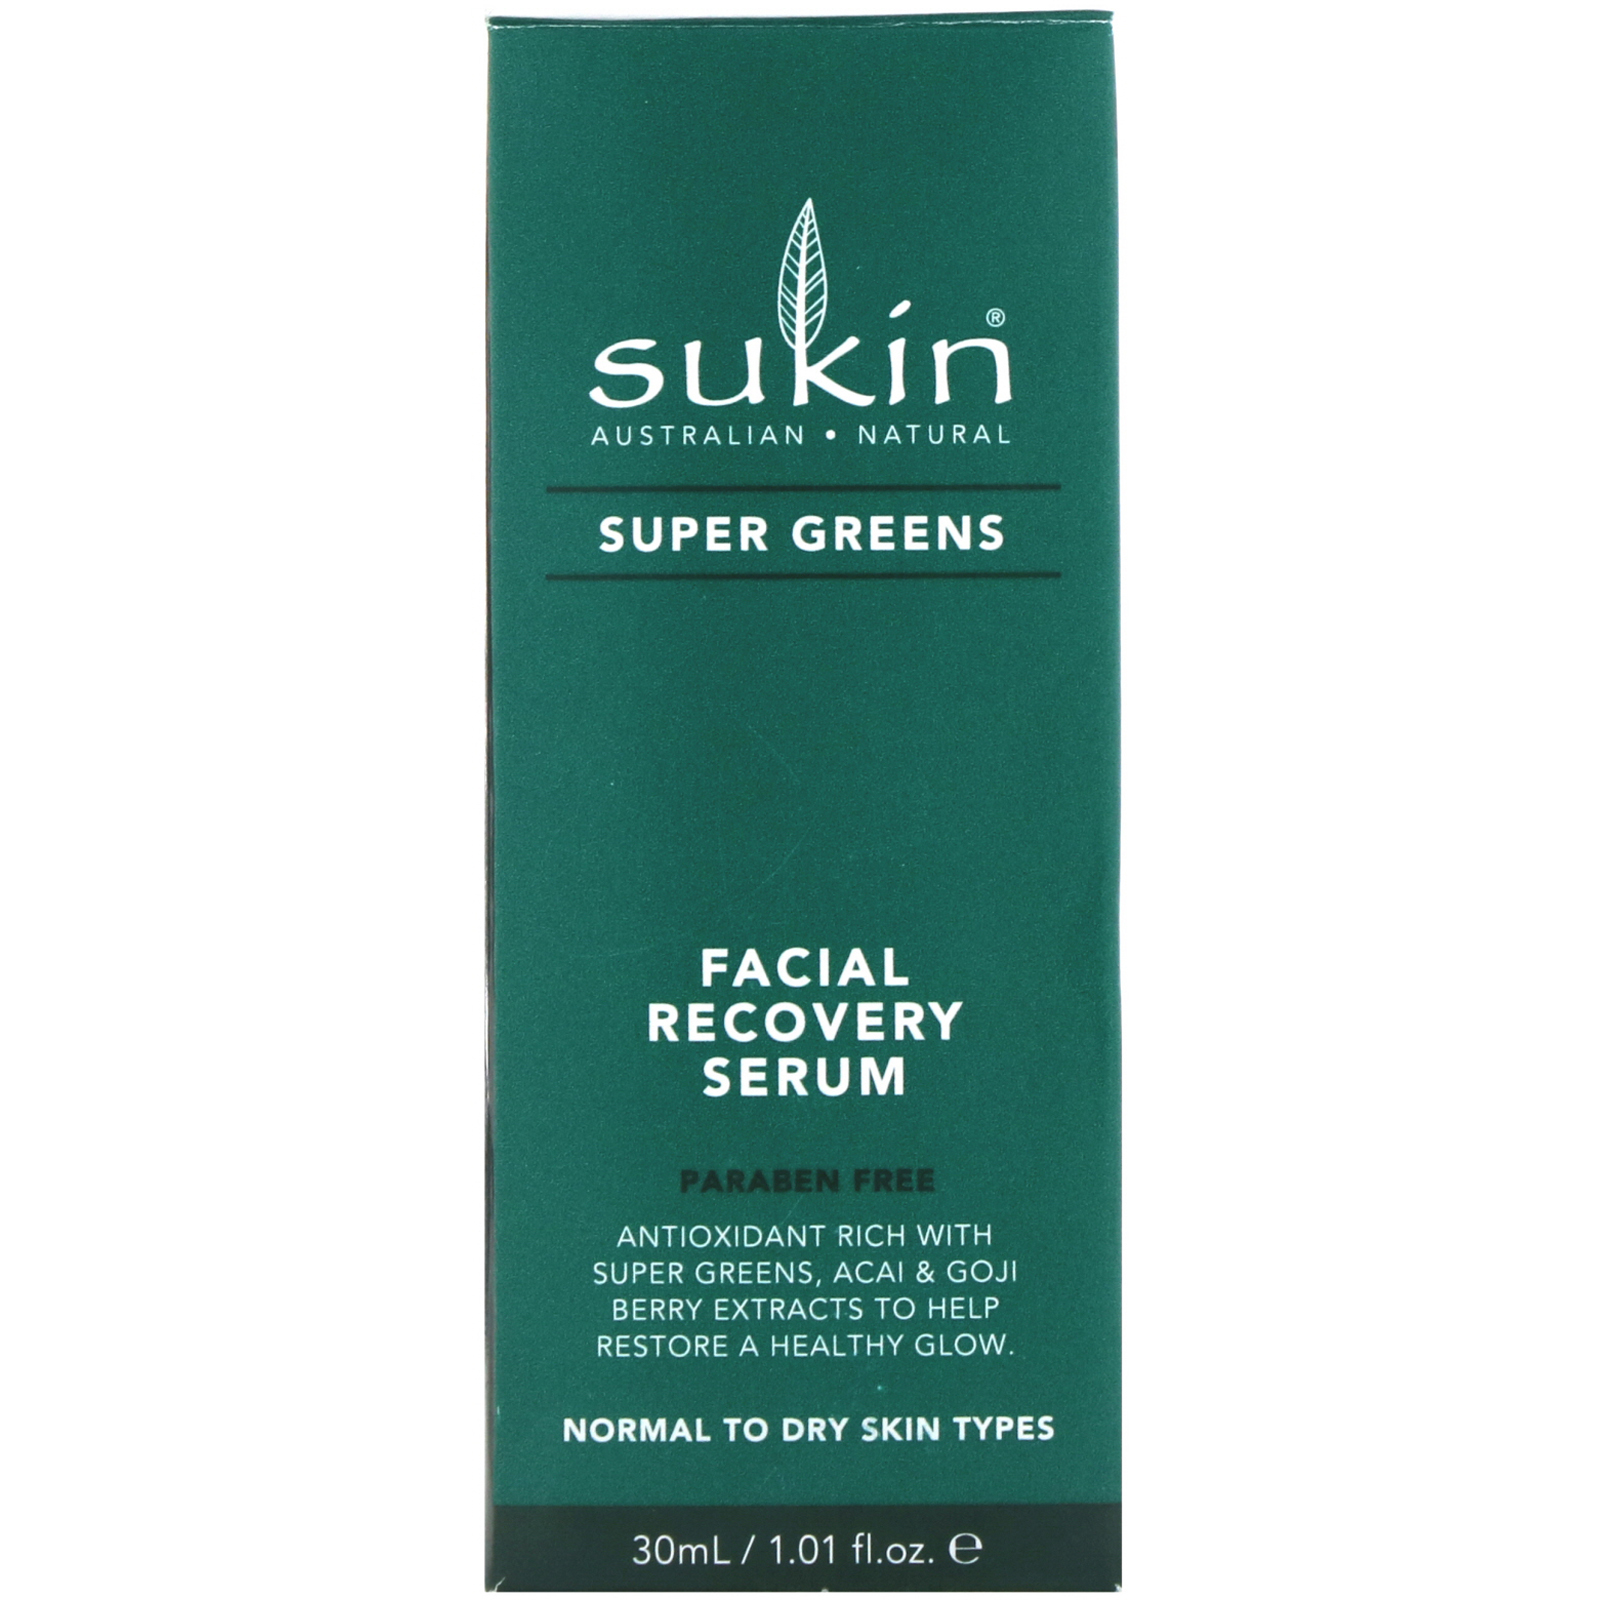 Sukin, Super Greens, Facial Recovery Serum, 1.01 fl oz (30 ml)